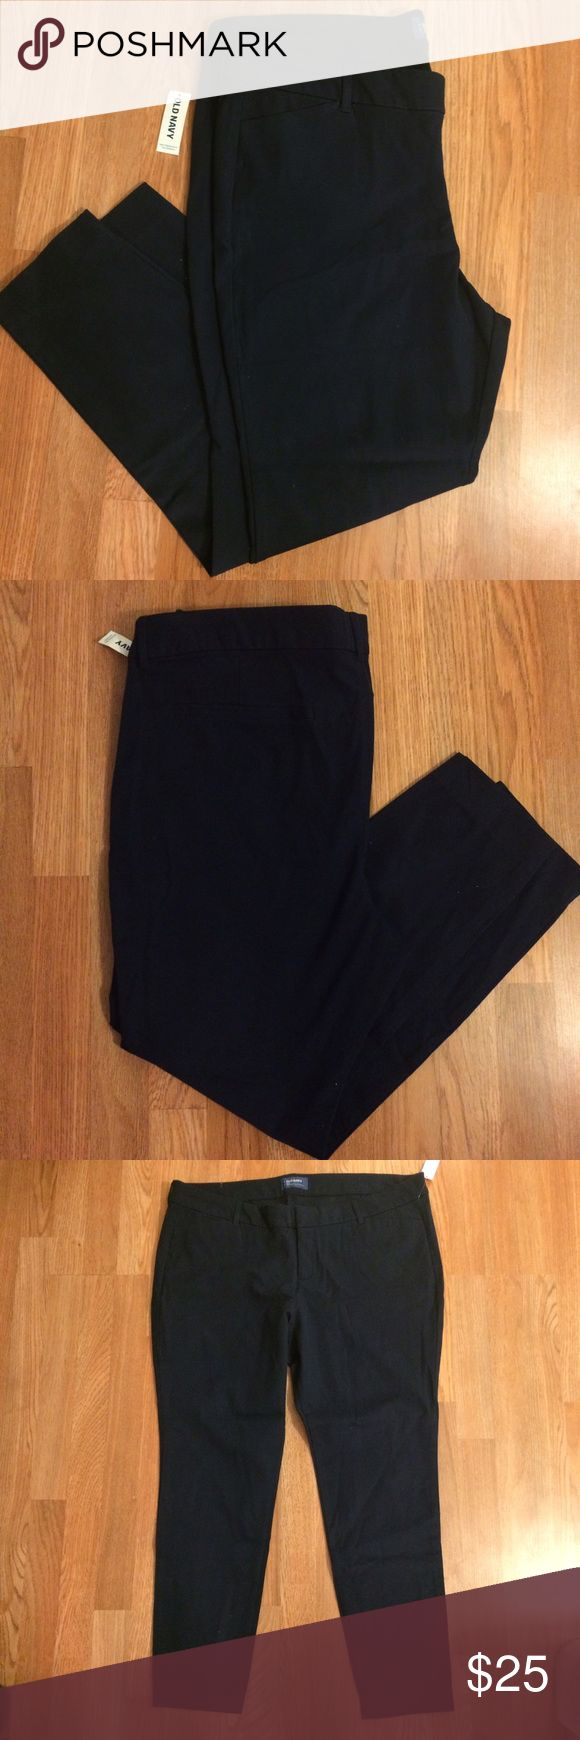 Old Navy Pixie Long   Size: 18 Petite These are Navy Blue Old Navy Pixie Long pants in size 18 short. NWT. Old Navy Pants